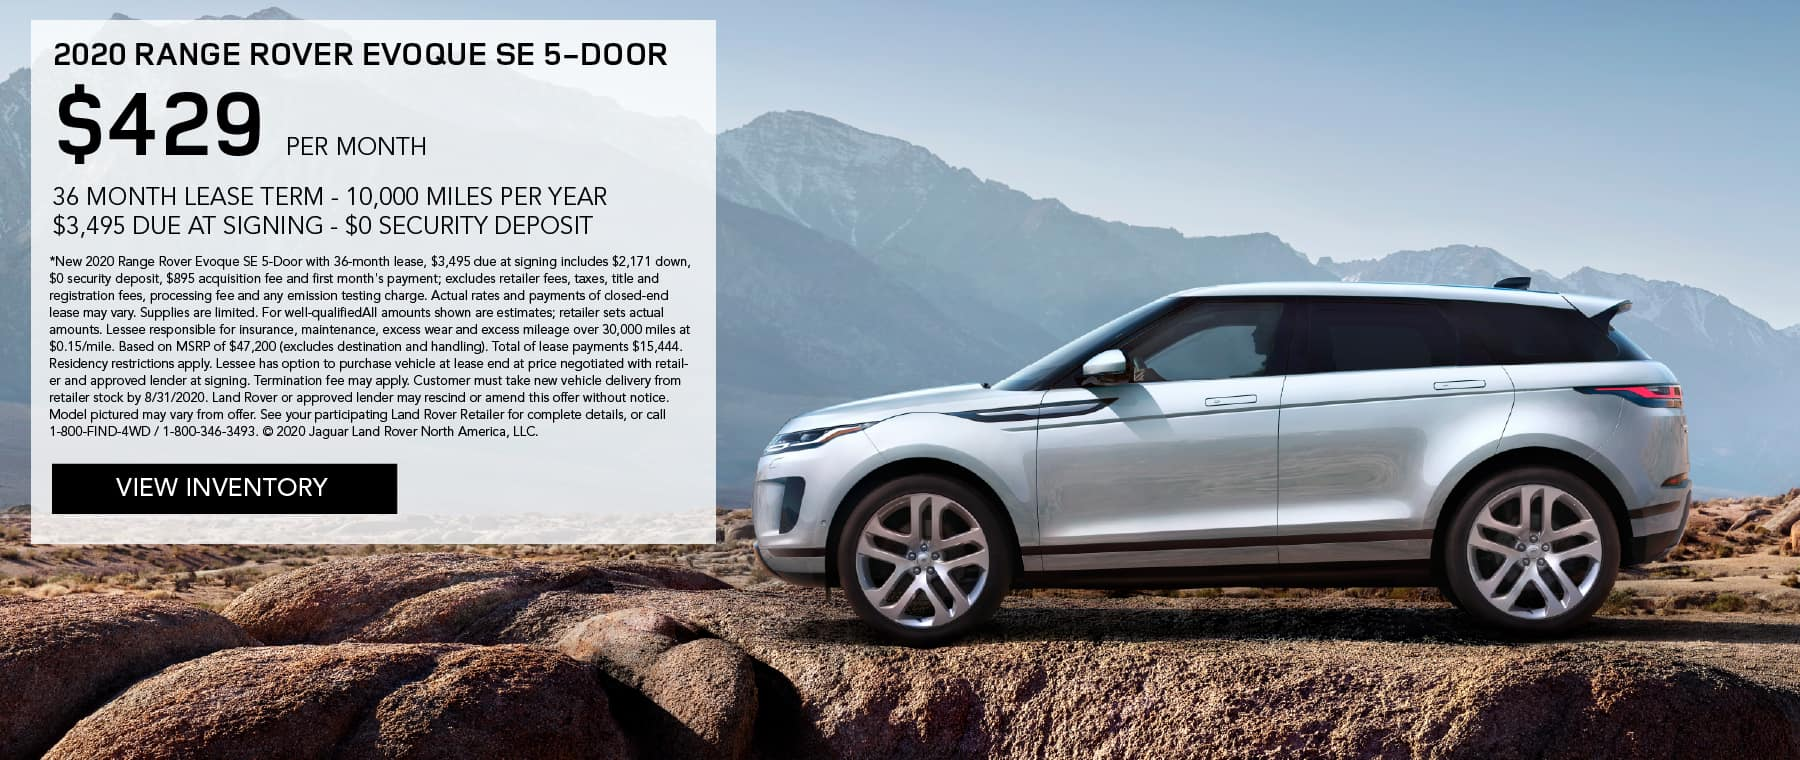 2020 RANGE ROVER EVOQUE SE 5-DOOR. $429 PER MONTH. 36 MONTH LEASE TERM. $3,495 CASH DUE AT SIGNING. $0 SECURITY DEPOSIT. 10,000 MILES PER YEAR. EXCLUDES RETAILER FEES, TAXES, TITLE AND REGISTRATION FEES, PROCESSING FEE AND ANY EMISSION TESTING CHARGE. ENDS 8/31/2020. VIEW INVENTORY. SILVER LAND ROVER EVOQUE PARKED ON DIRT ROAD IN FRONT OF MOUNTAIN.